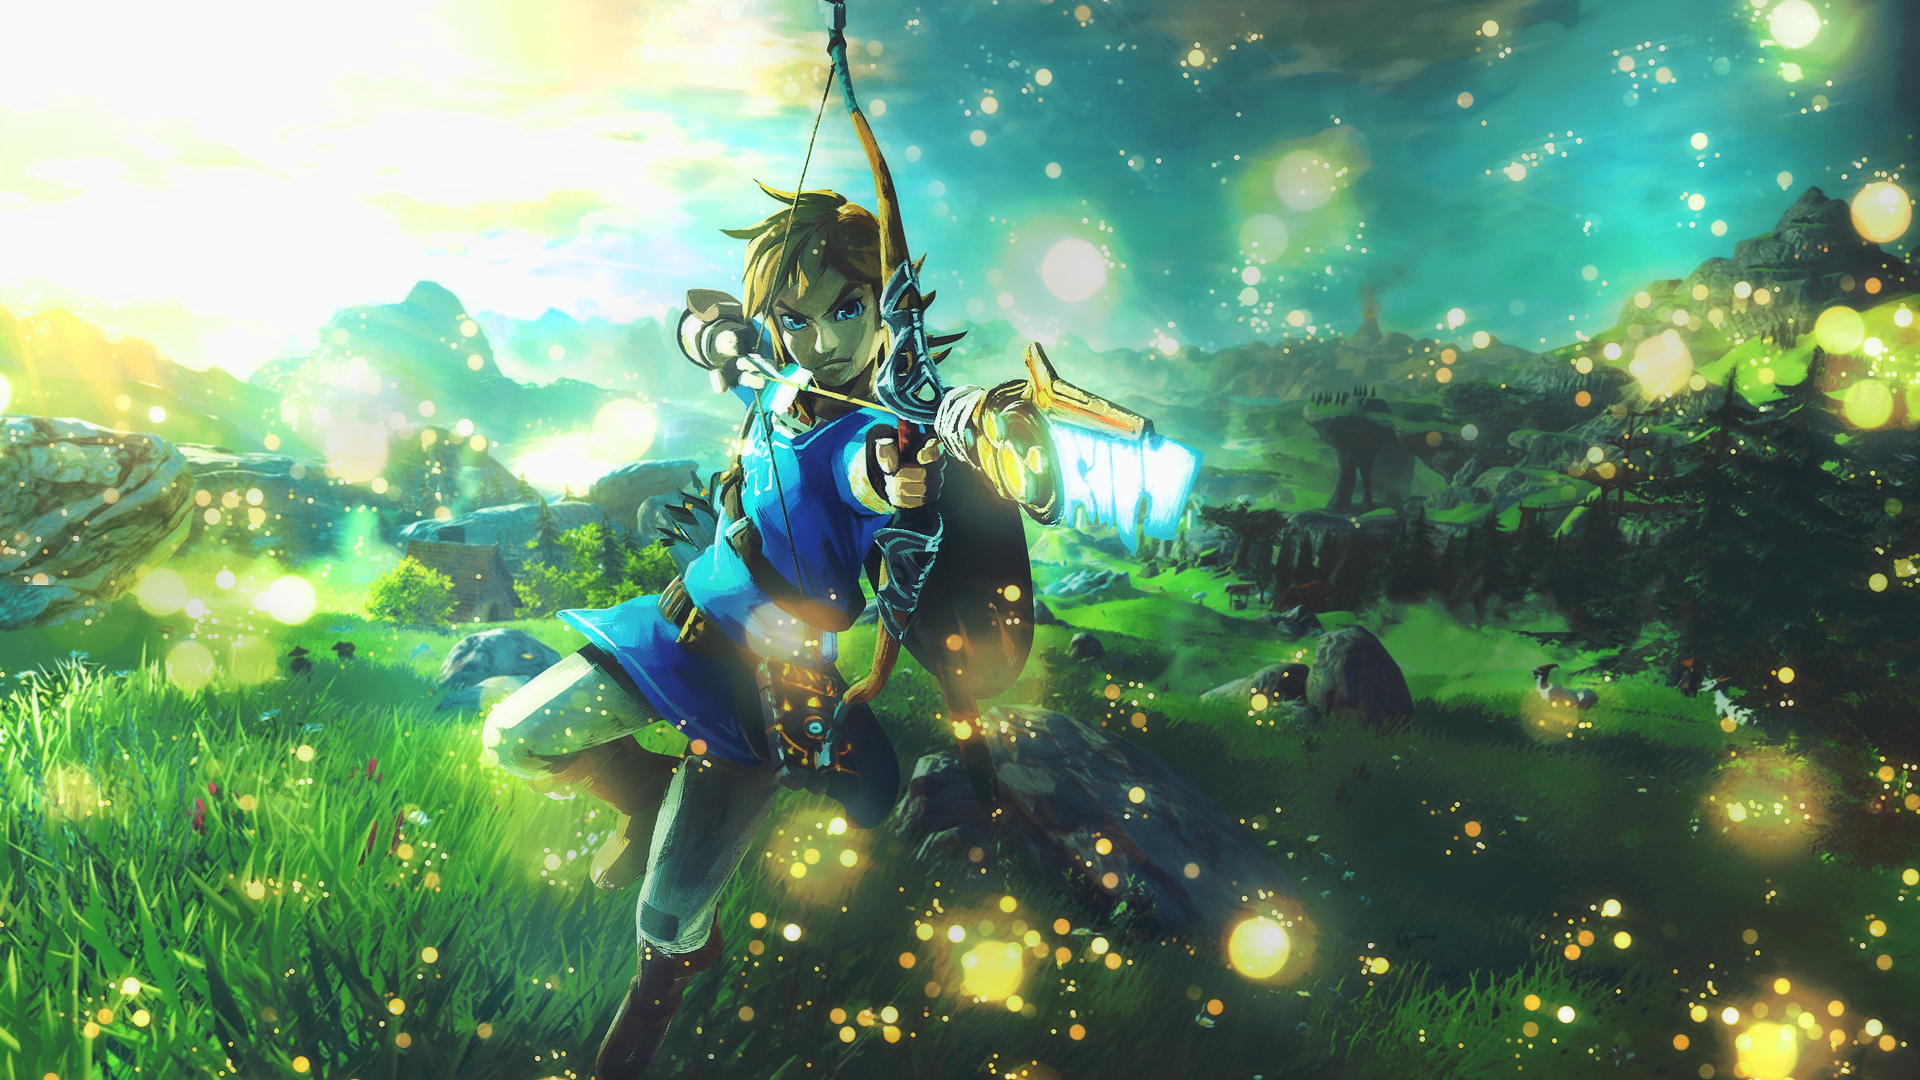 Breath Of The Wild Desktop Wallpaper: Zelda: Breath Of The Wild [Wallpaper] By YataMirror On